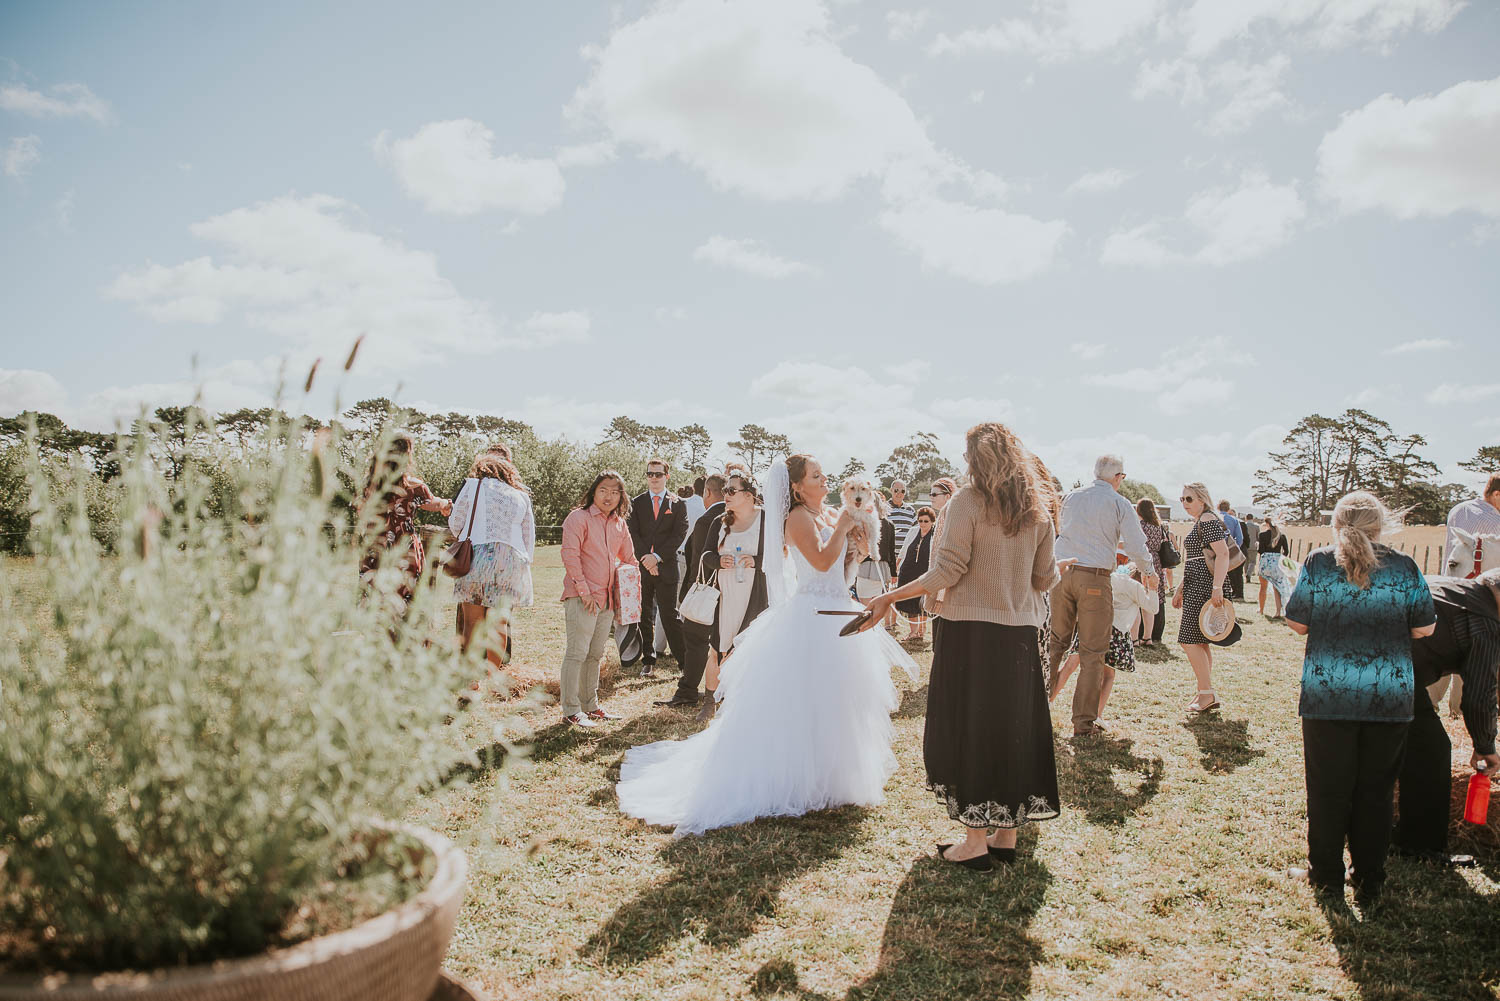 james-melinda-auckland-rustic-farm-wedding-52